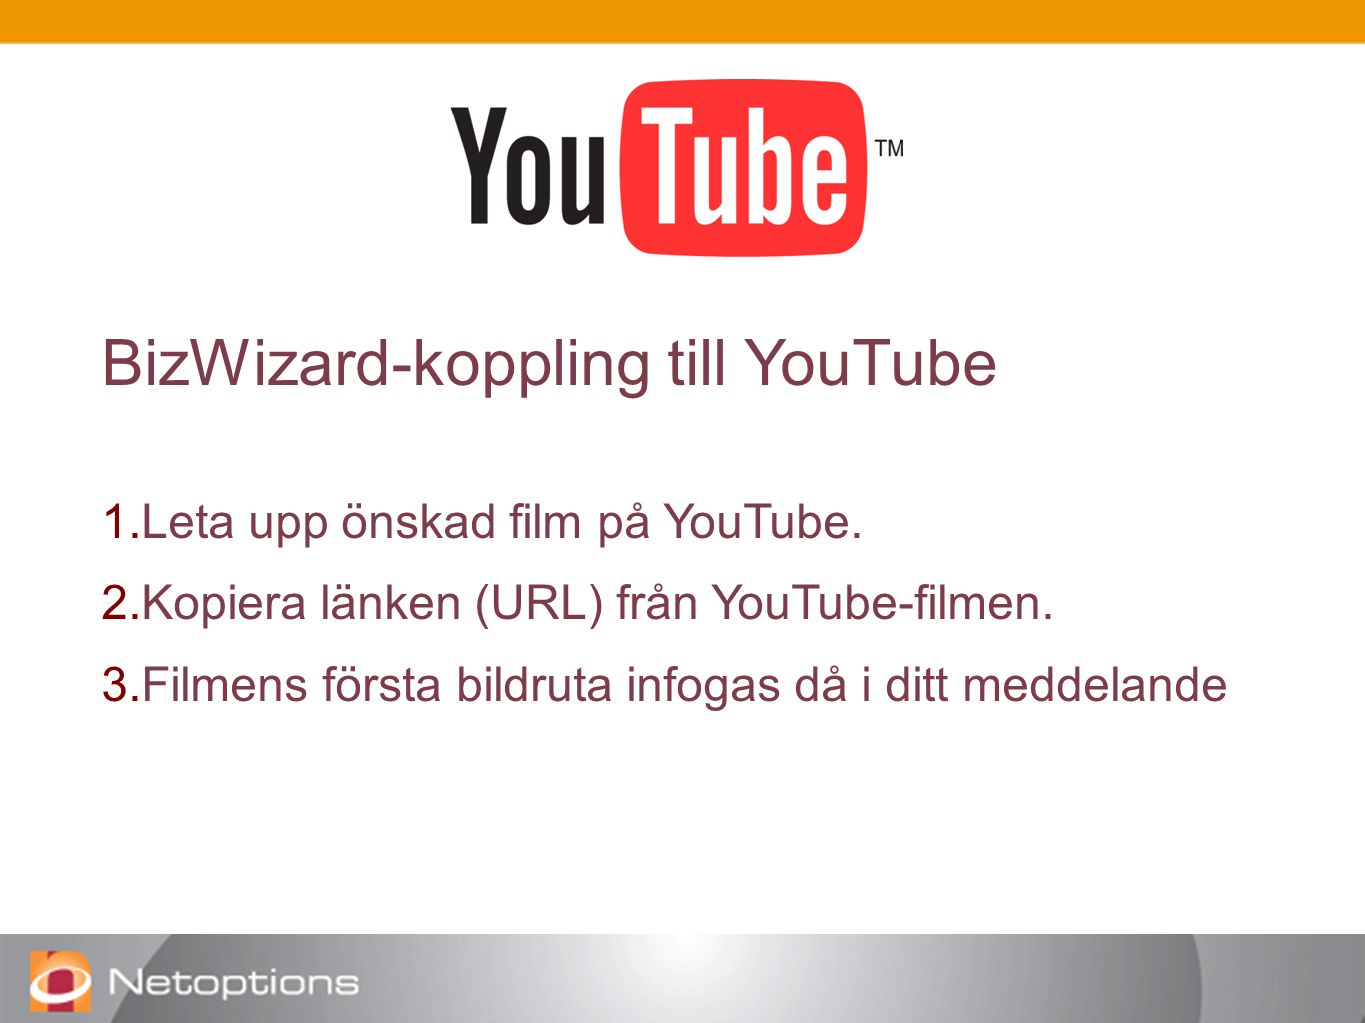 BizWizard-koppling till YouTube 1. Leta upp önskad film på YouTube.